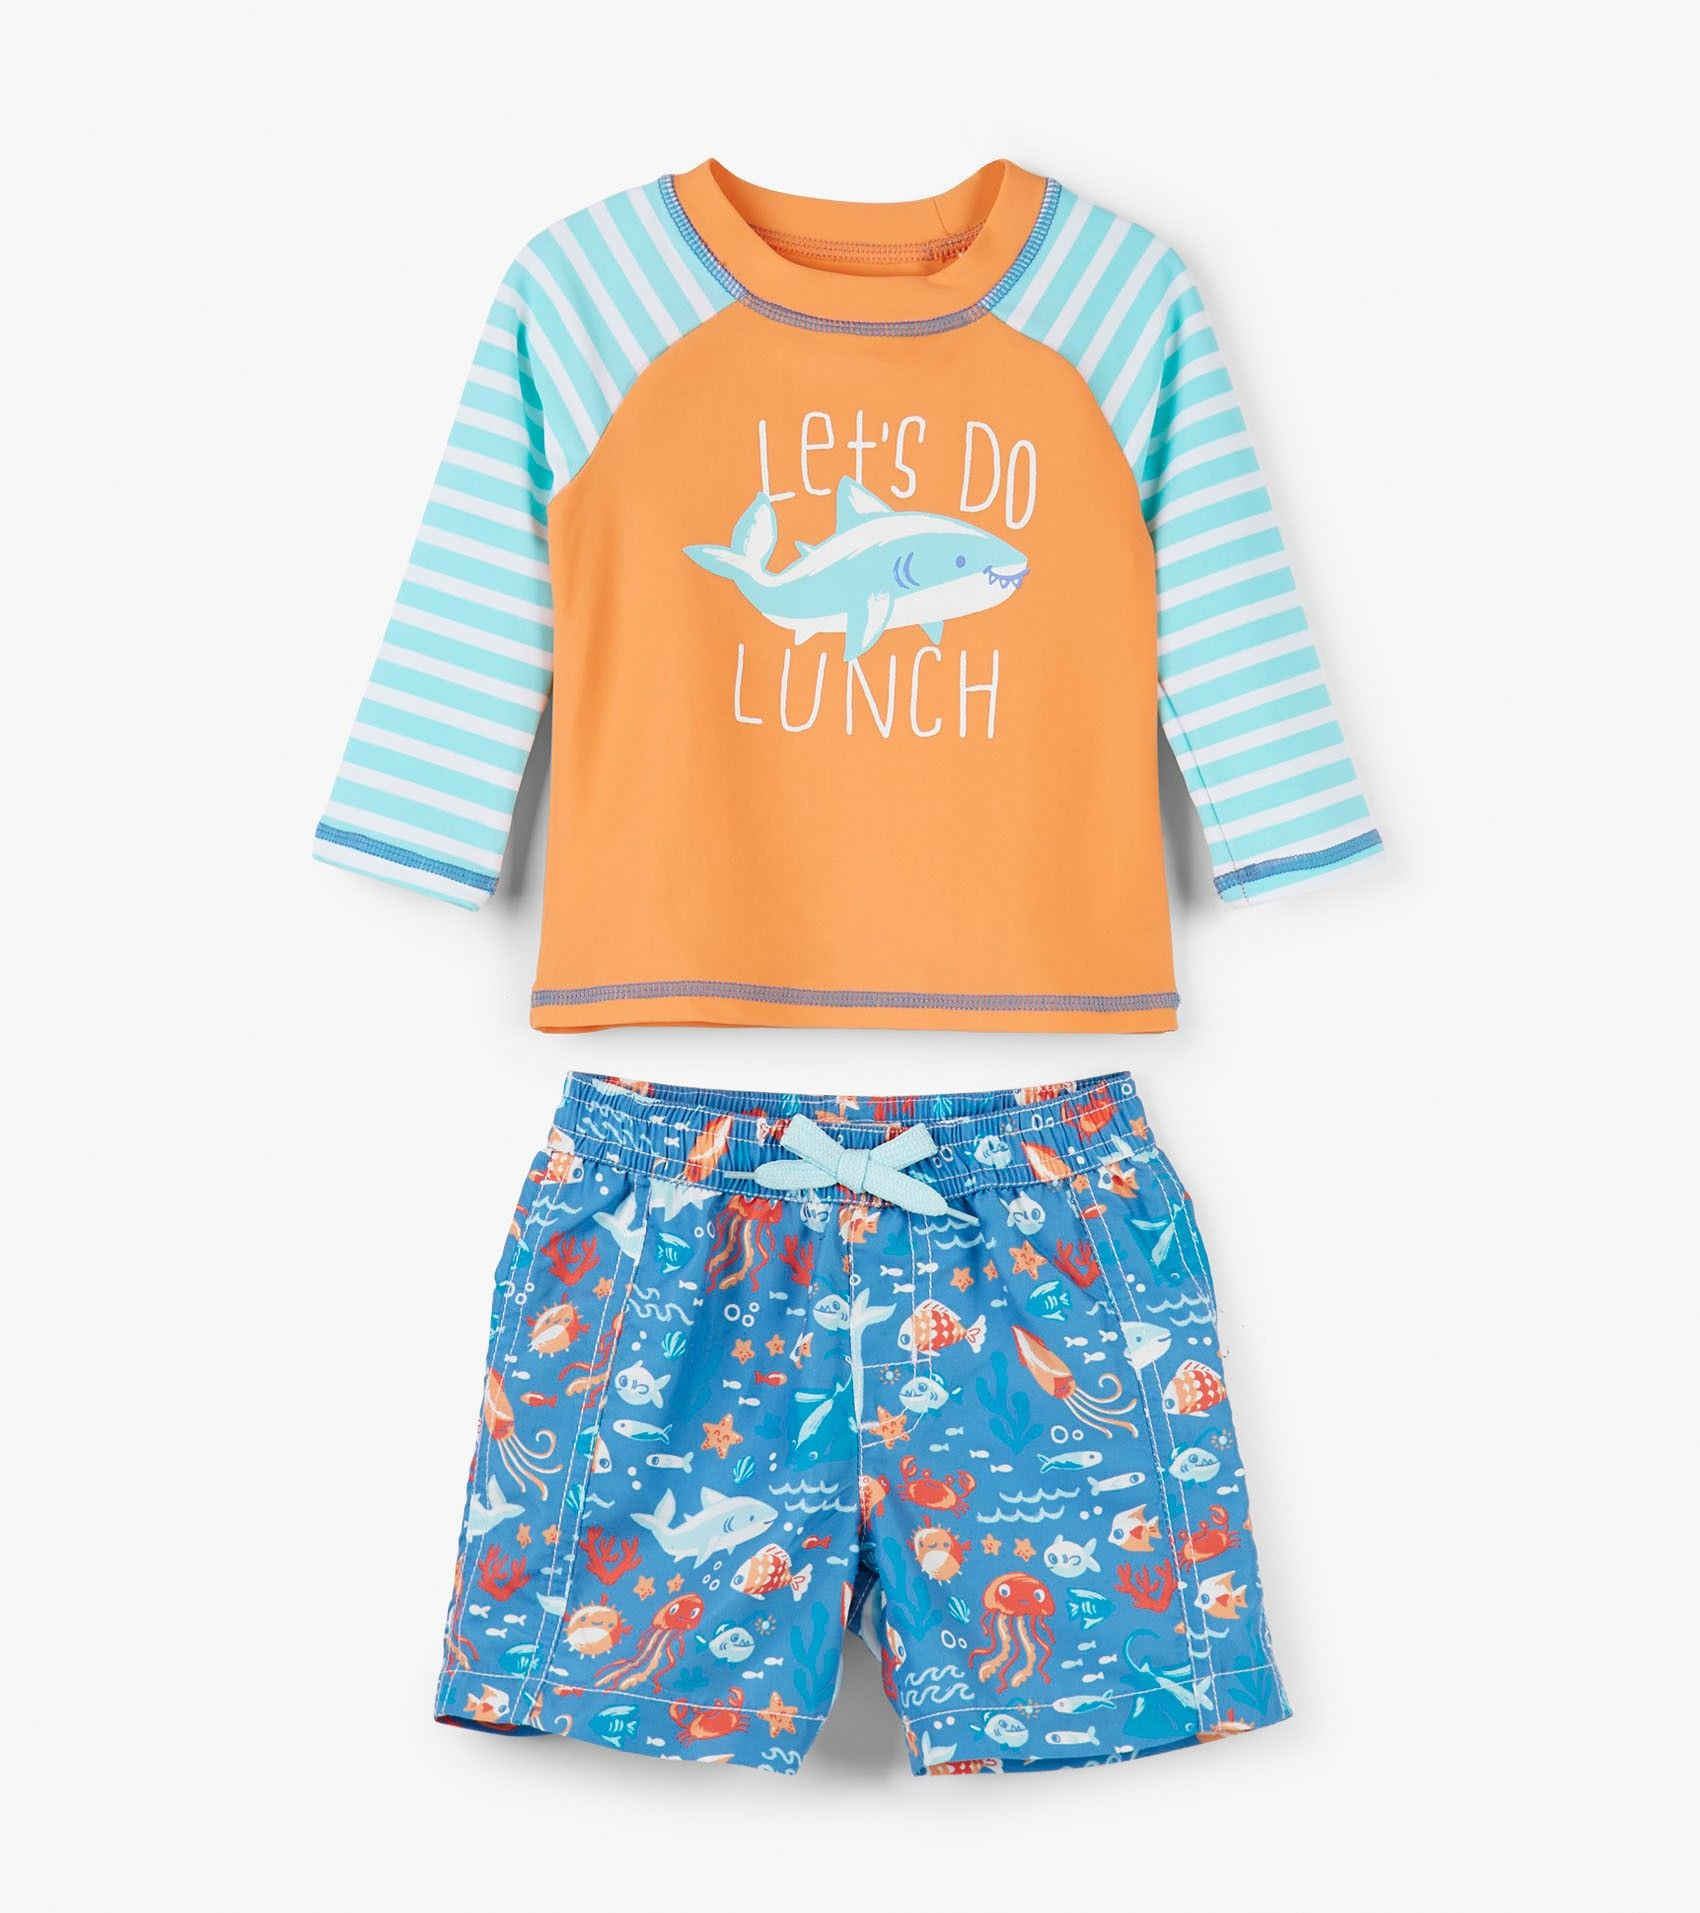 6f583b017a2a2 Ocean Animals Baby Rashguard Set - Swimwear - Categories - Baby Boys |  Hatley US